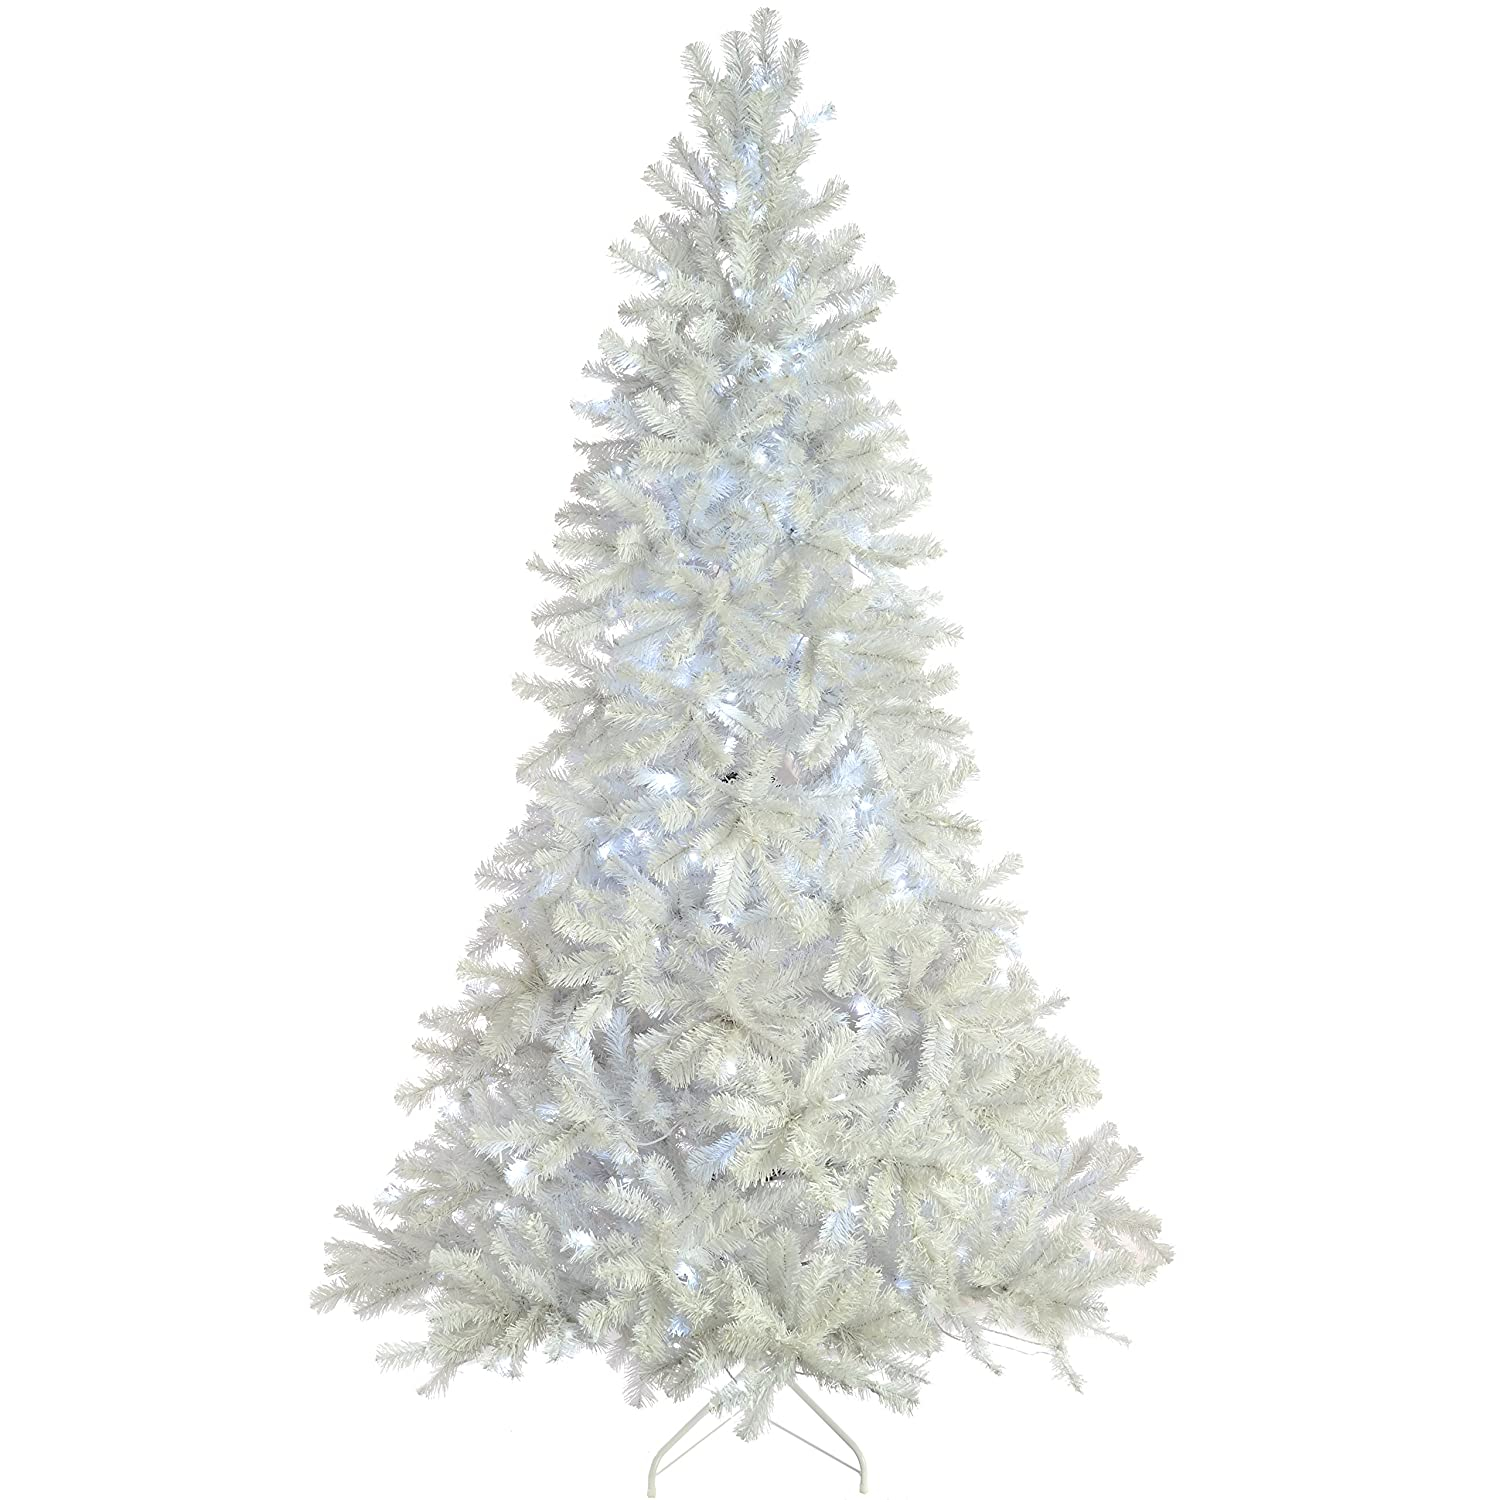 Pre-Lit Deluxe White Pine Pre-Lit Multi-Function Christmas Tree, 1.8 m - 6 feet with 250-LED, White